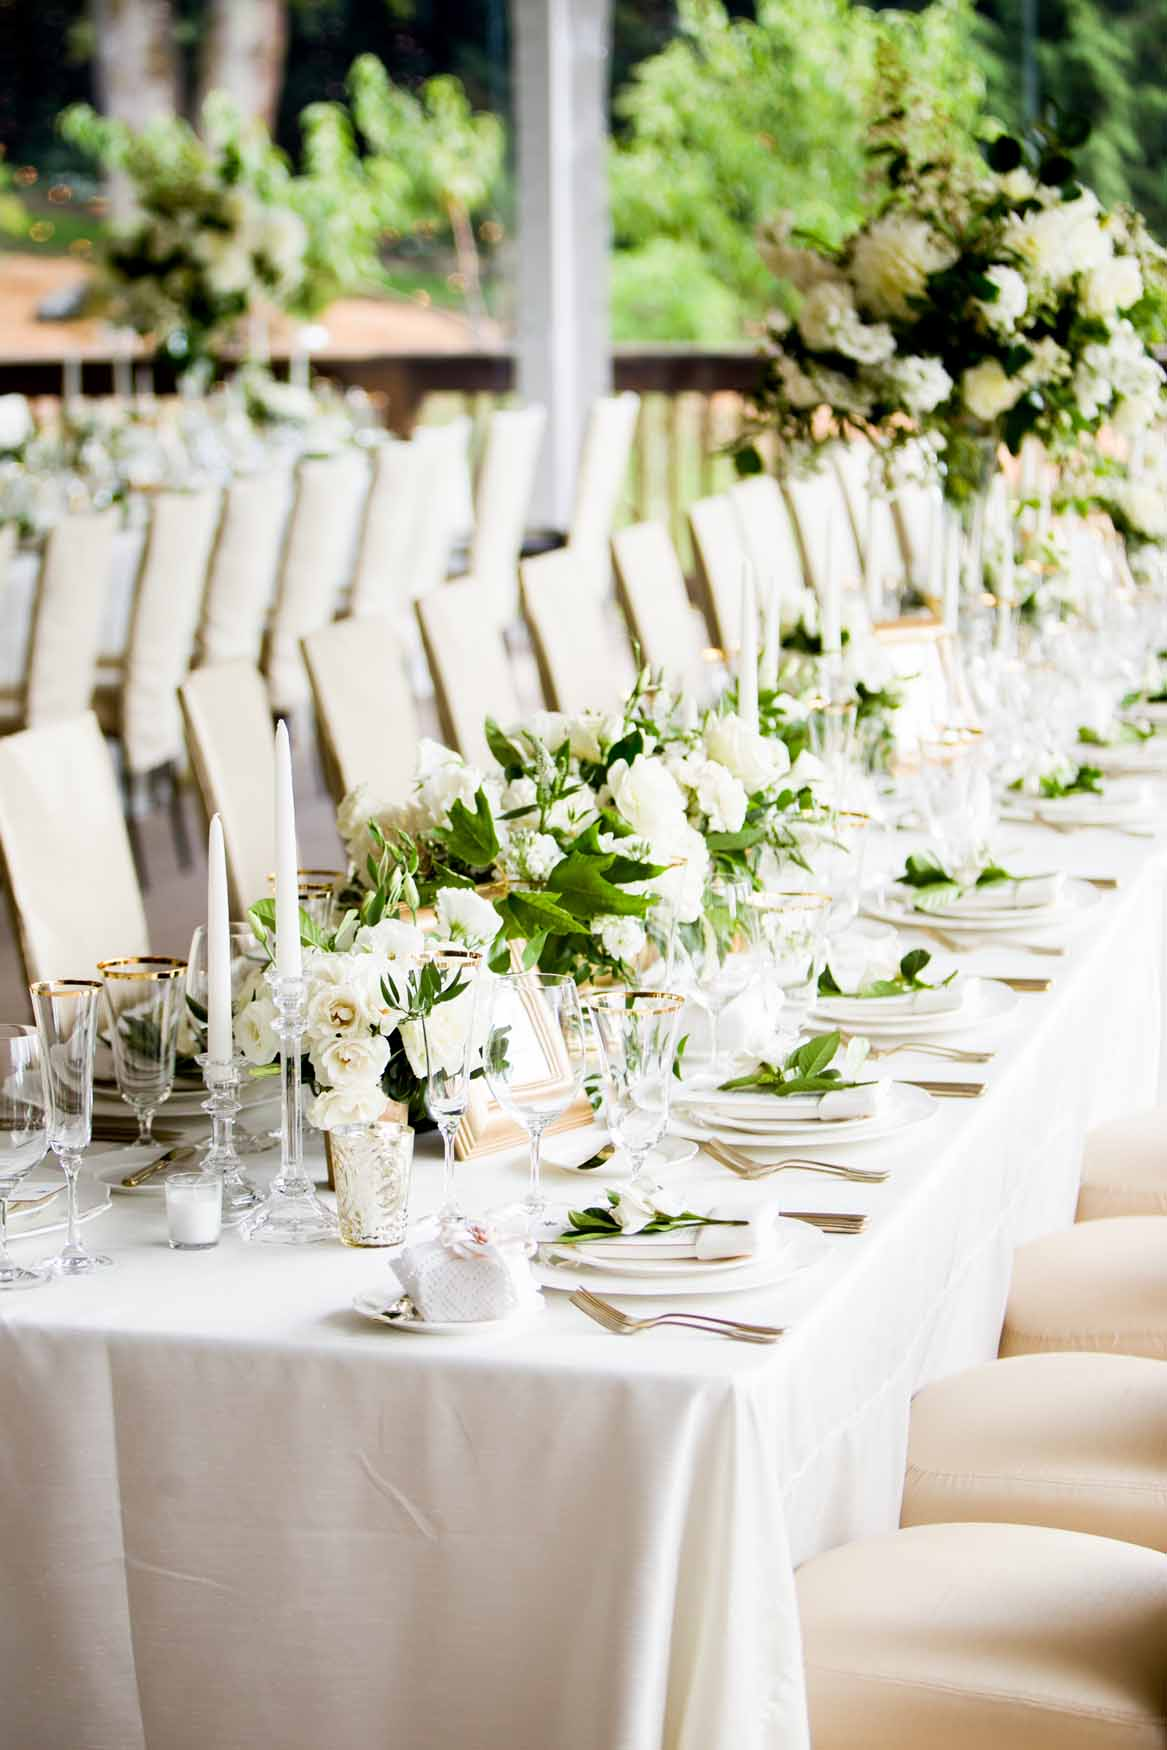 Long table at wedding reception with white centerpieces - Elegant Summer Private Estate Wedding. Flora Nova Design Seattle